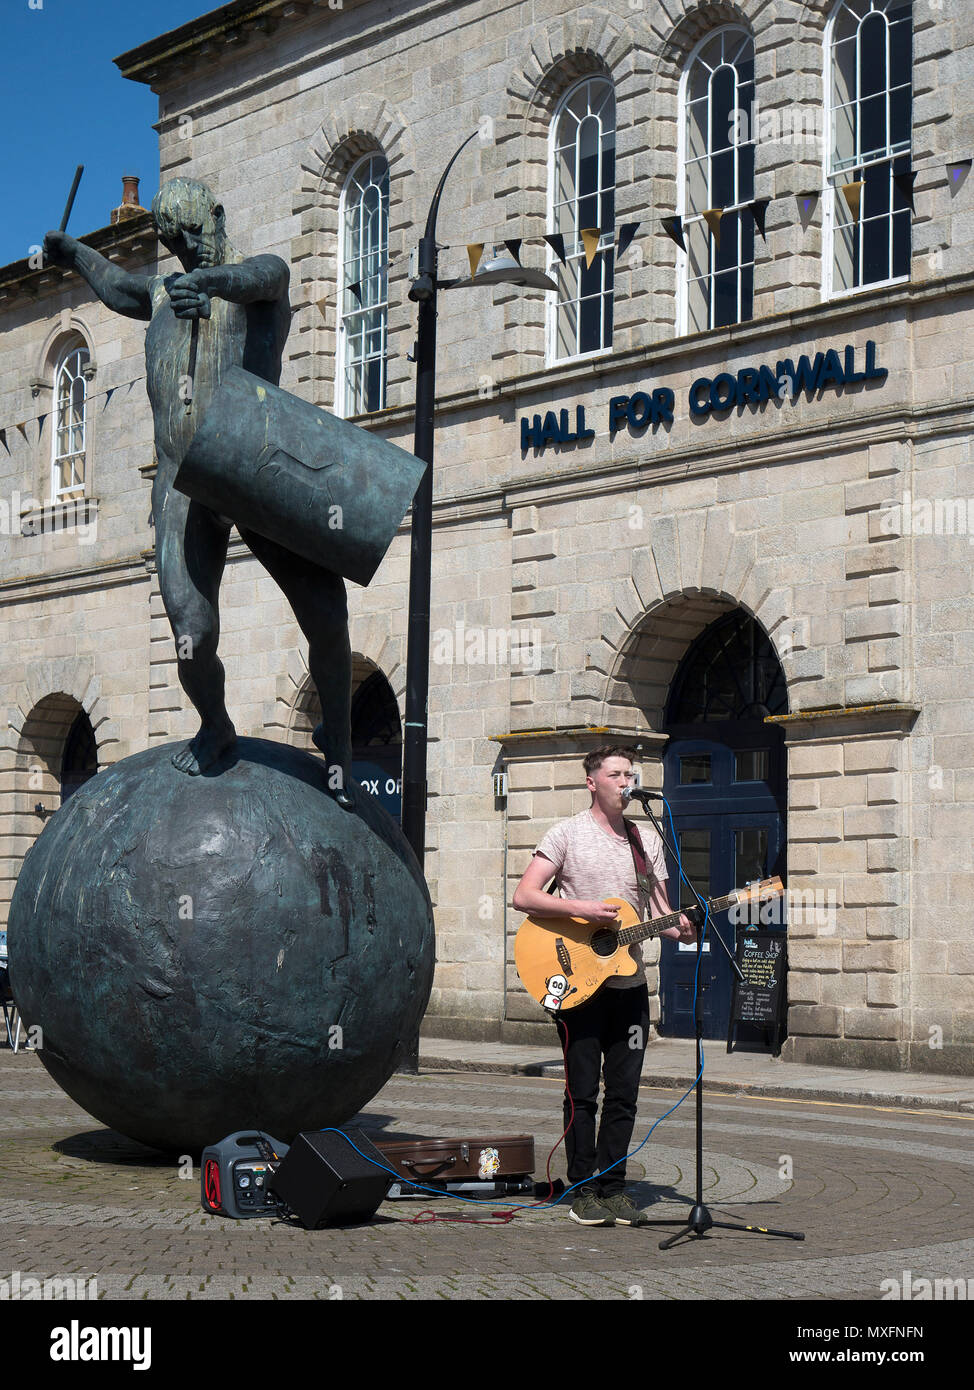 young man busking outside the hall for cornwall in truro, cornwall, england, britain, uk, - Stock Image